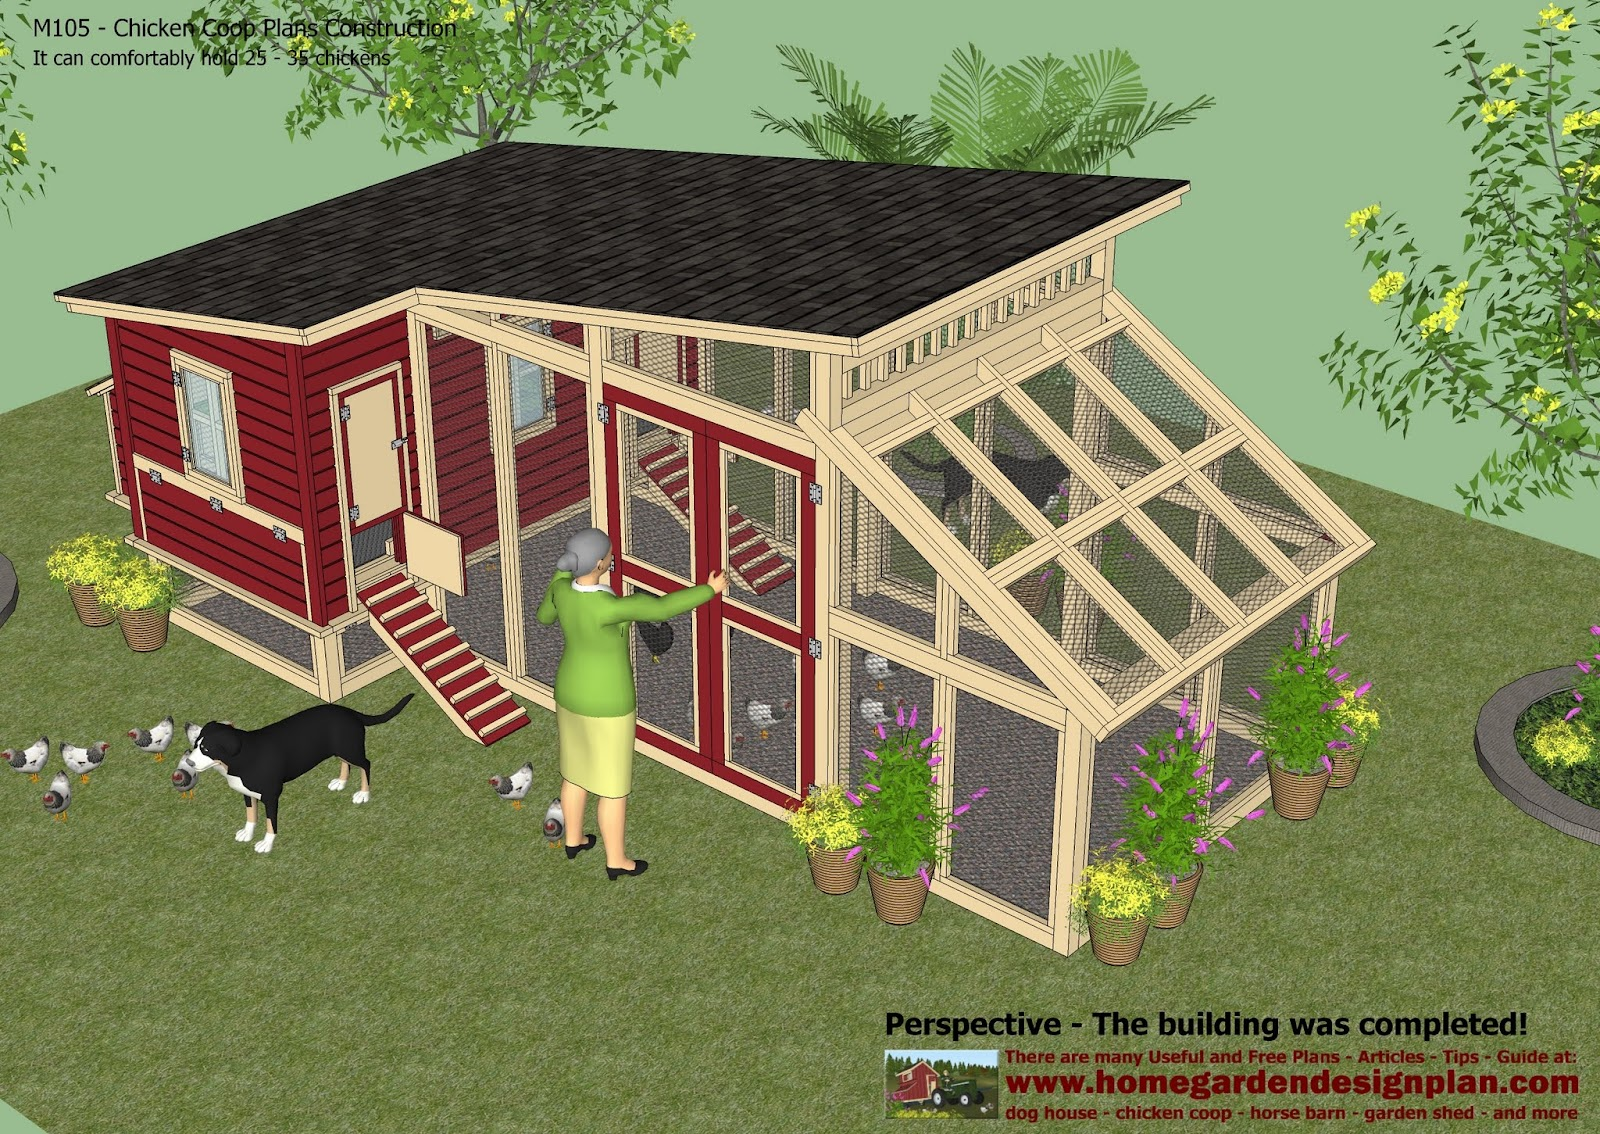 home garden plans m105 chicken coop plans construction